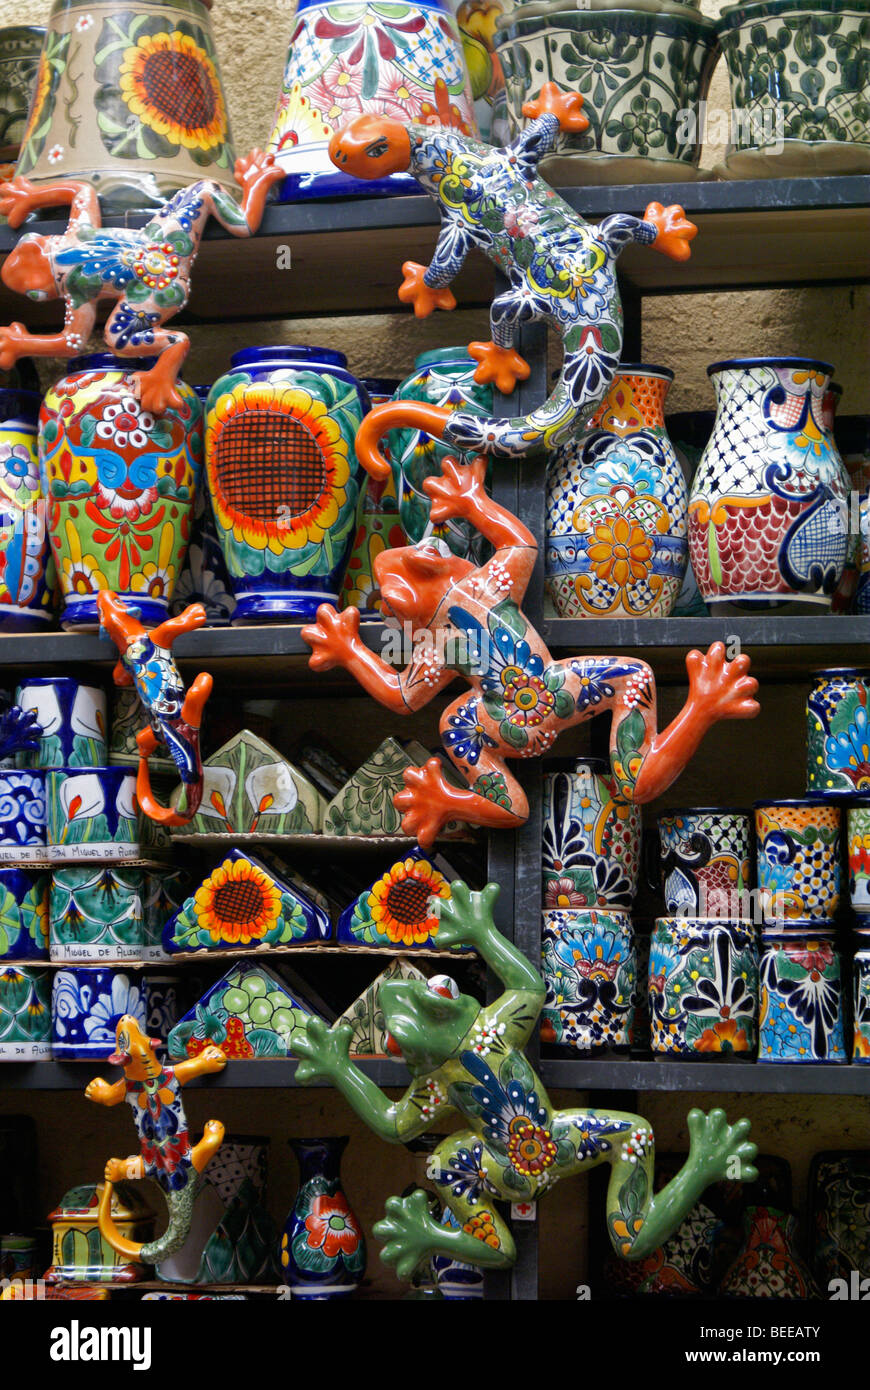 ceramics-for-sale-in-the-market-in-san-m